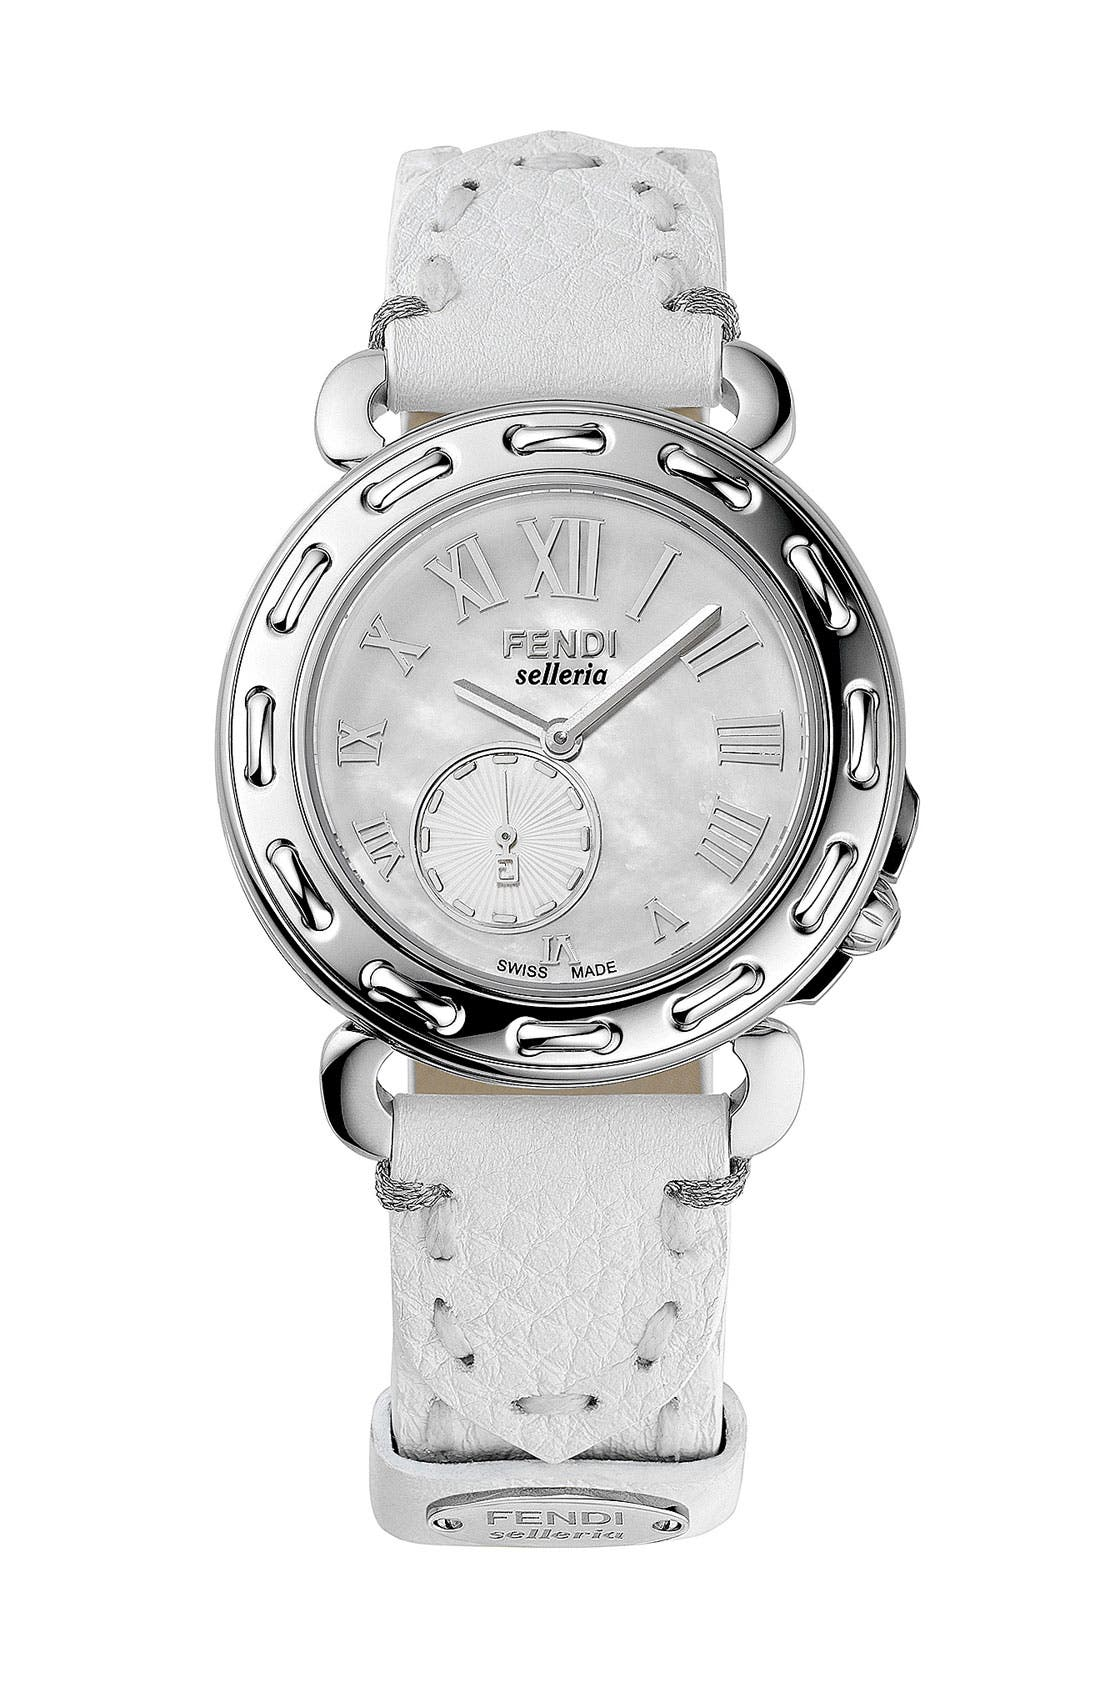 Alternate Image 2  - Fendi 'Selleria' Mother-of-Pearl Watch Case, 46mm